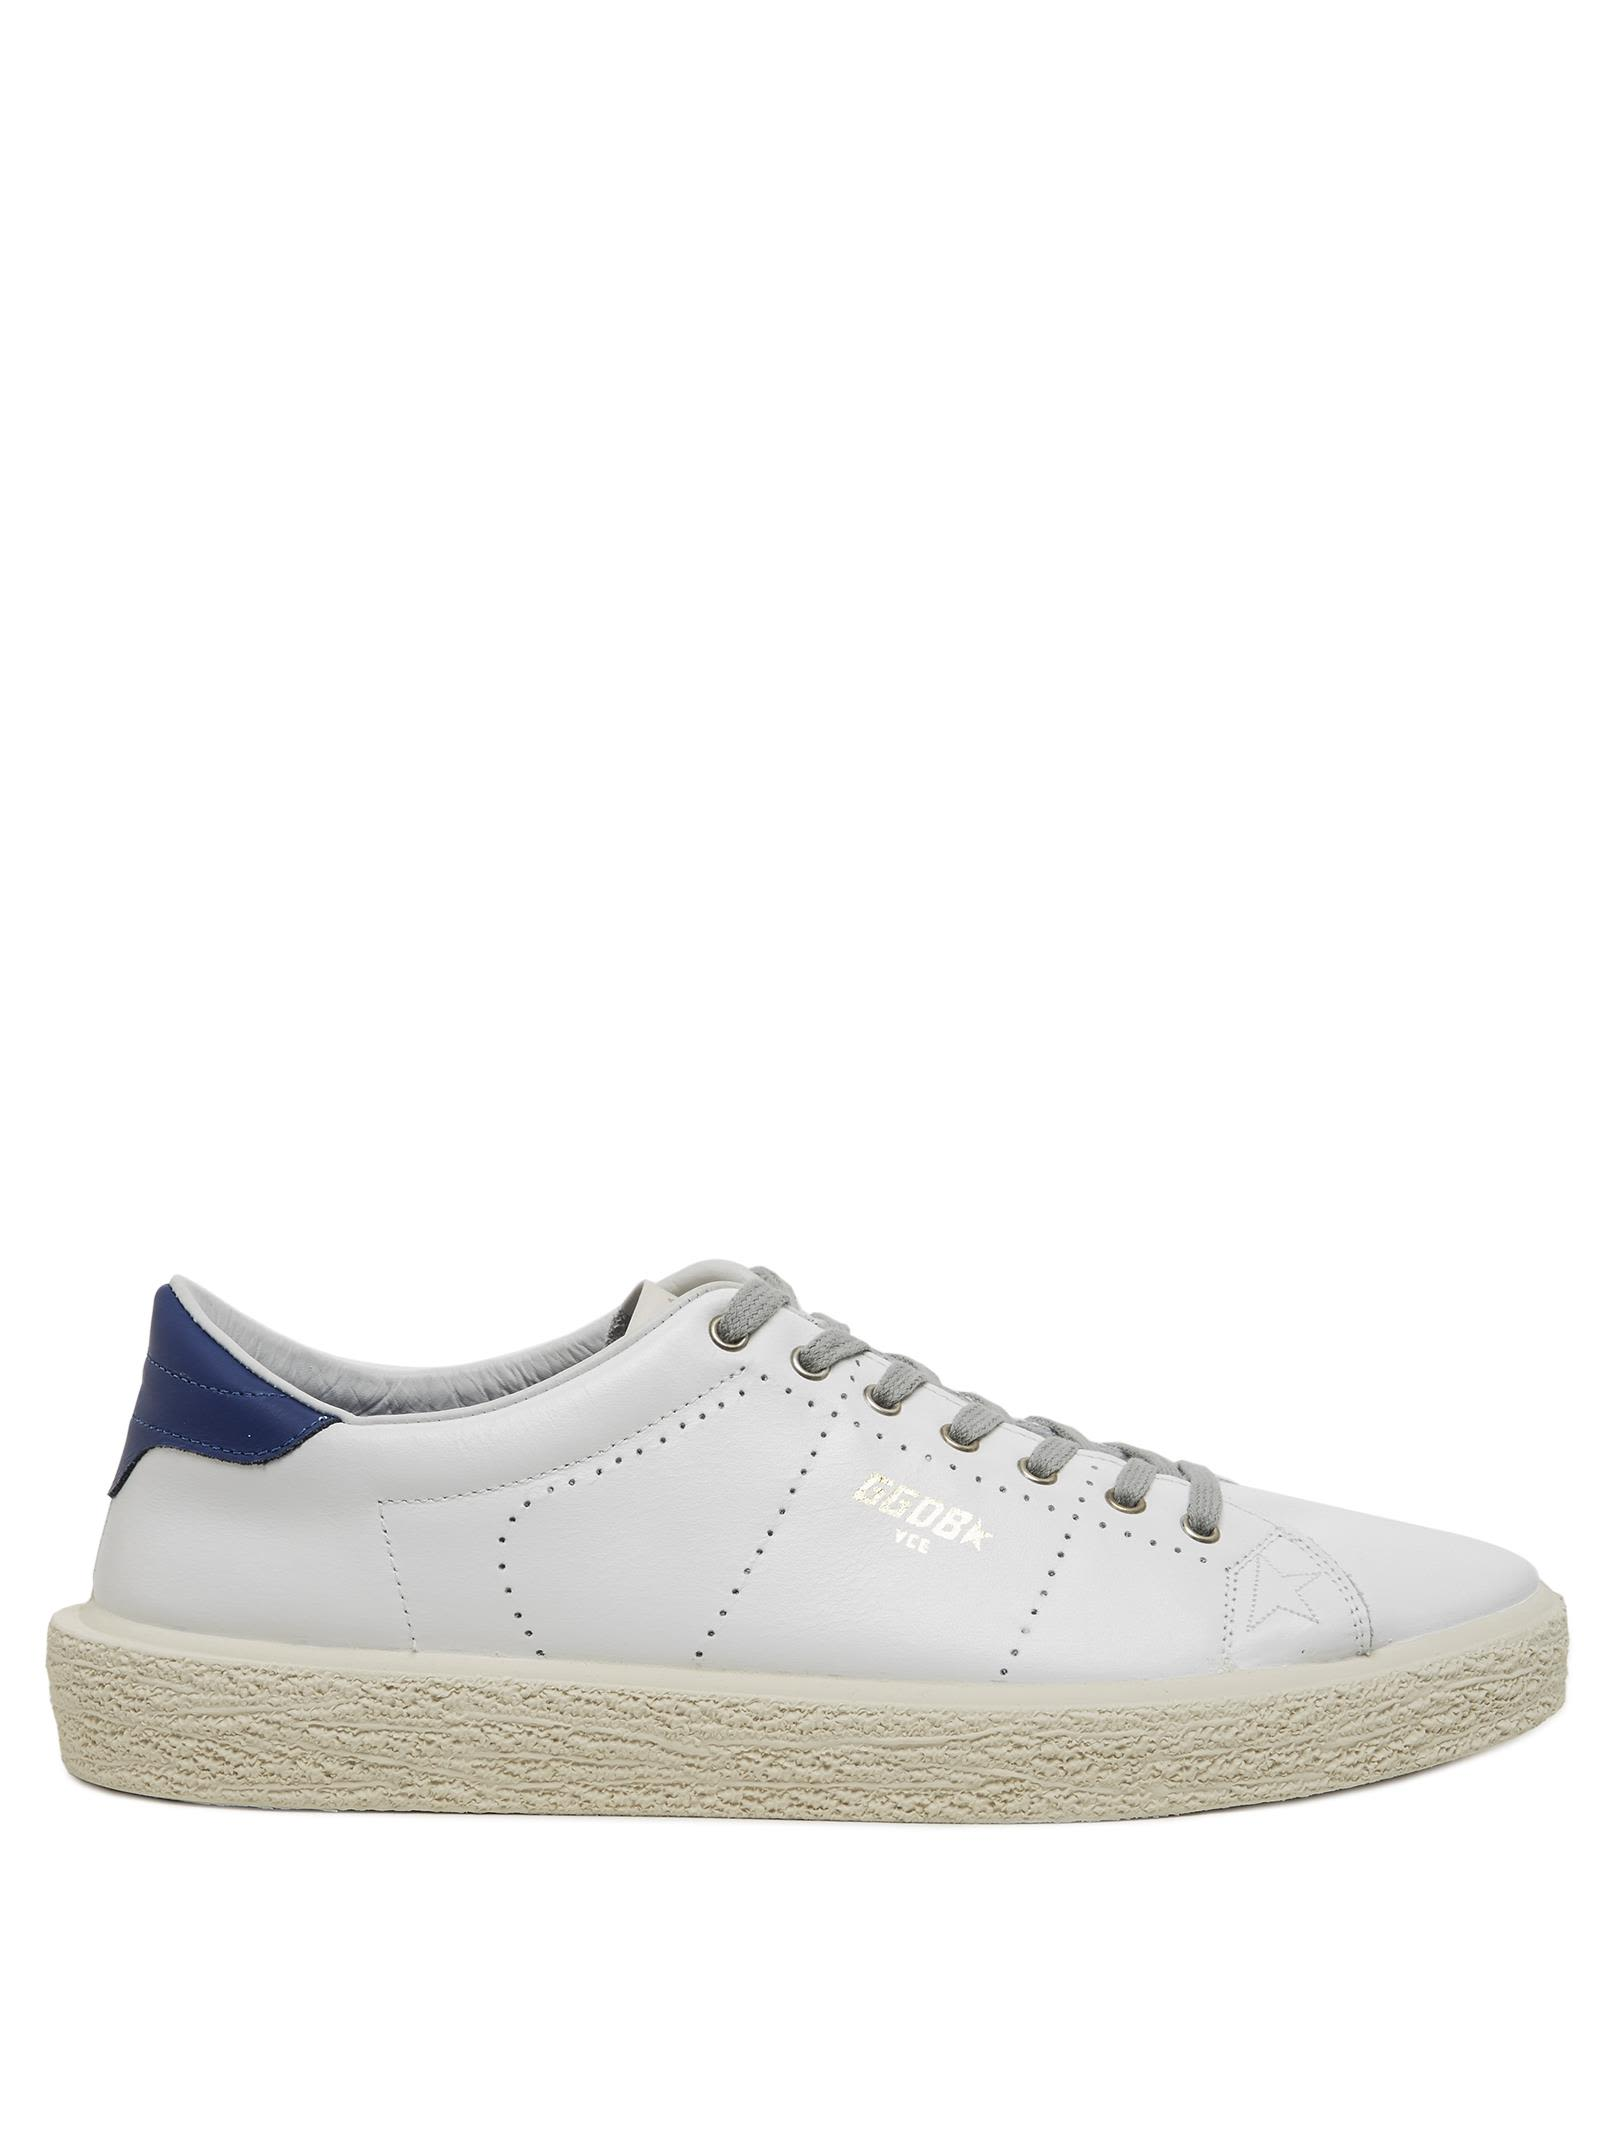 GOLDEN GOOSE TENNIS SHOES